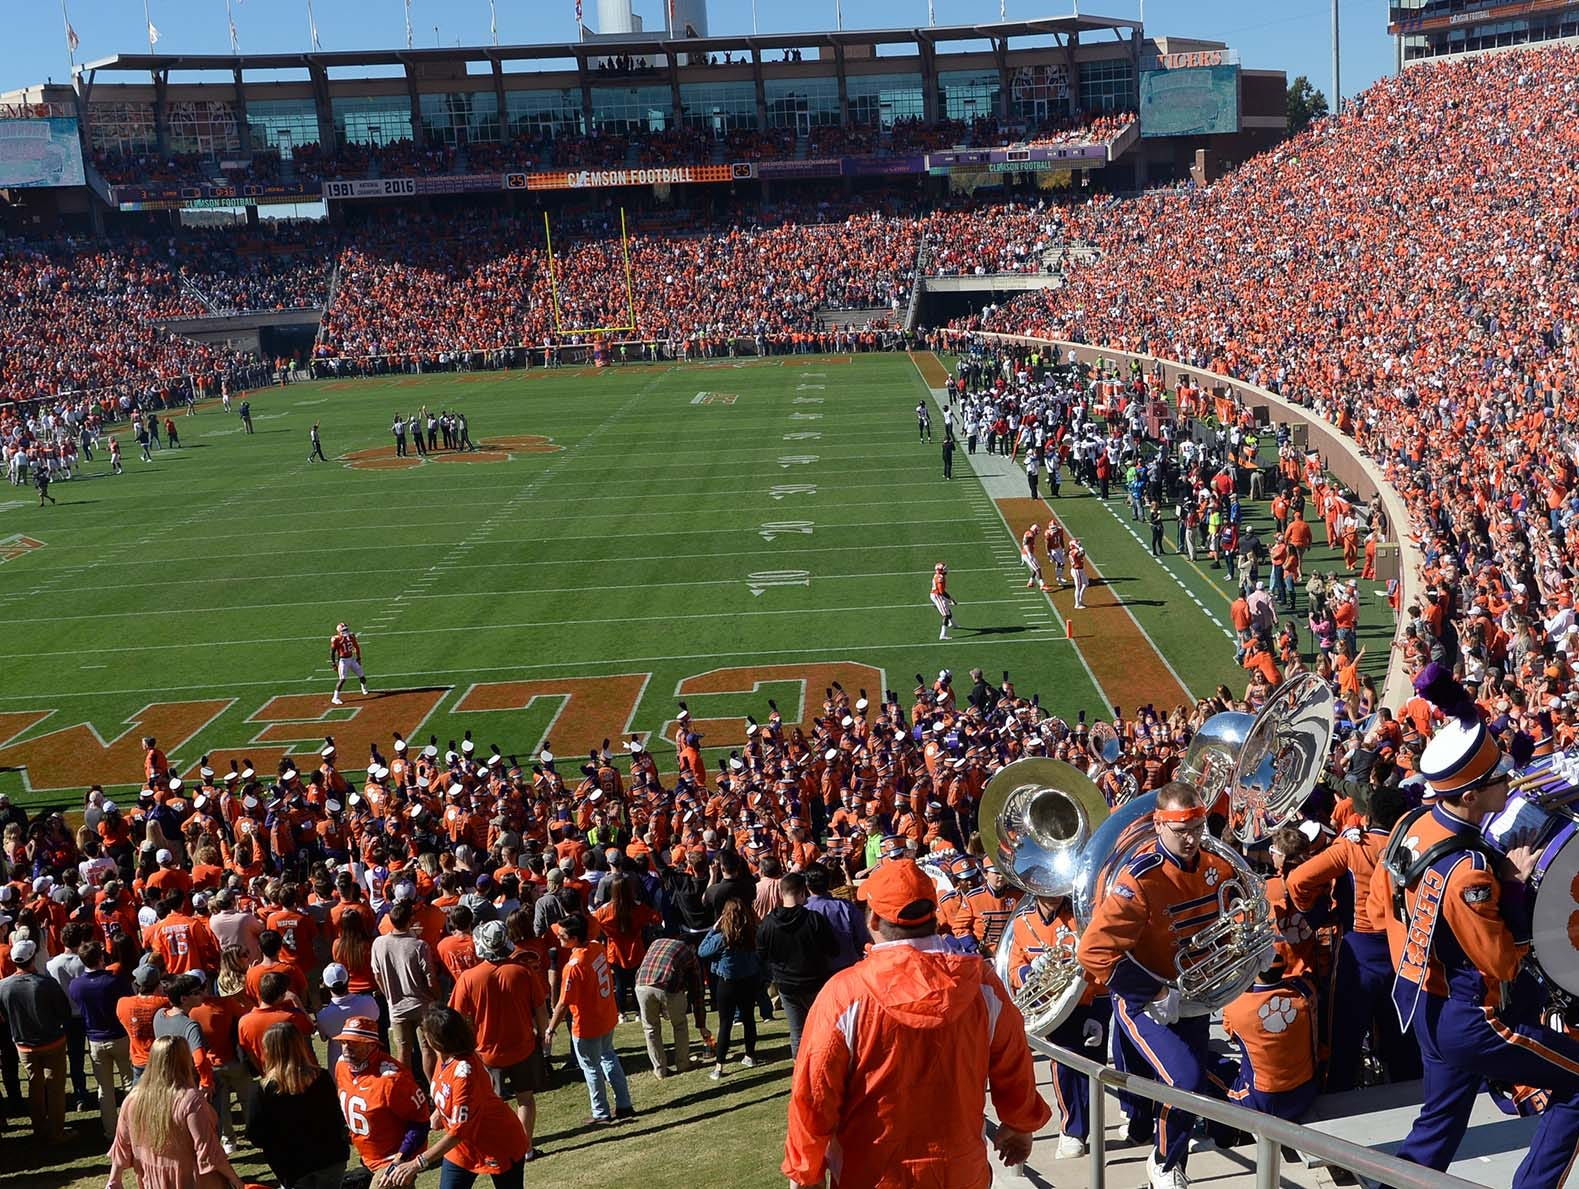 Clemson fans watch the Louisville game during the first quarter in Memorial Stadium on Saturday, November 3, 2018.